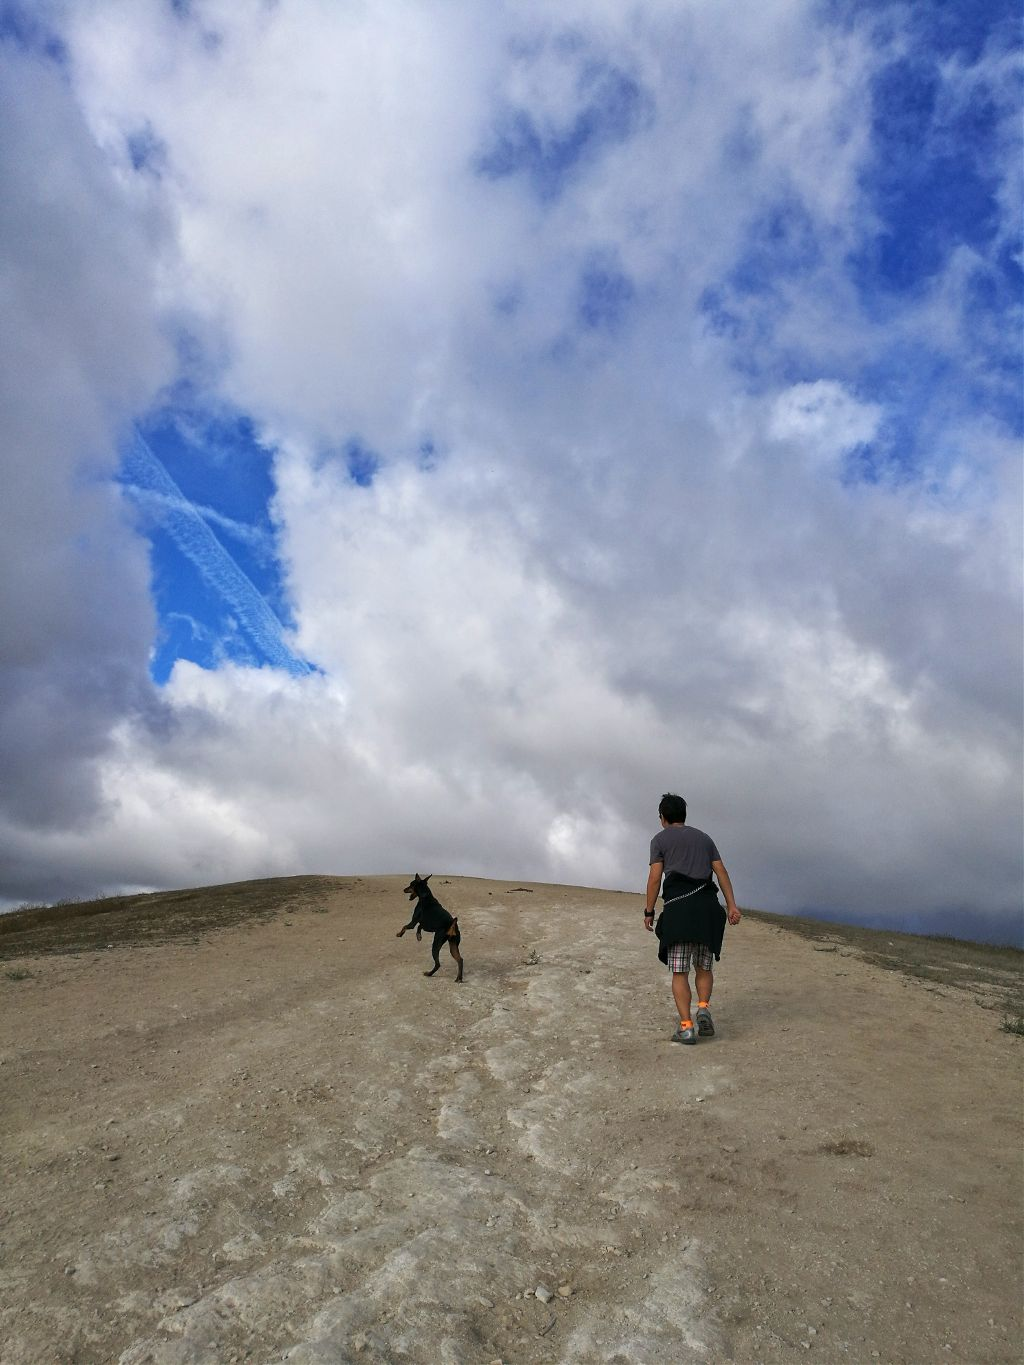 #dpcclouds #FreeToEdit  #sky #clouds #dog #people